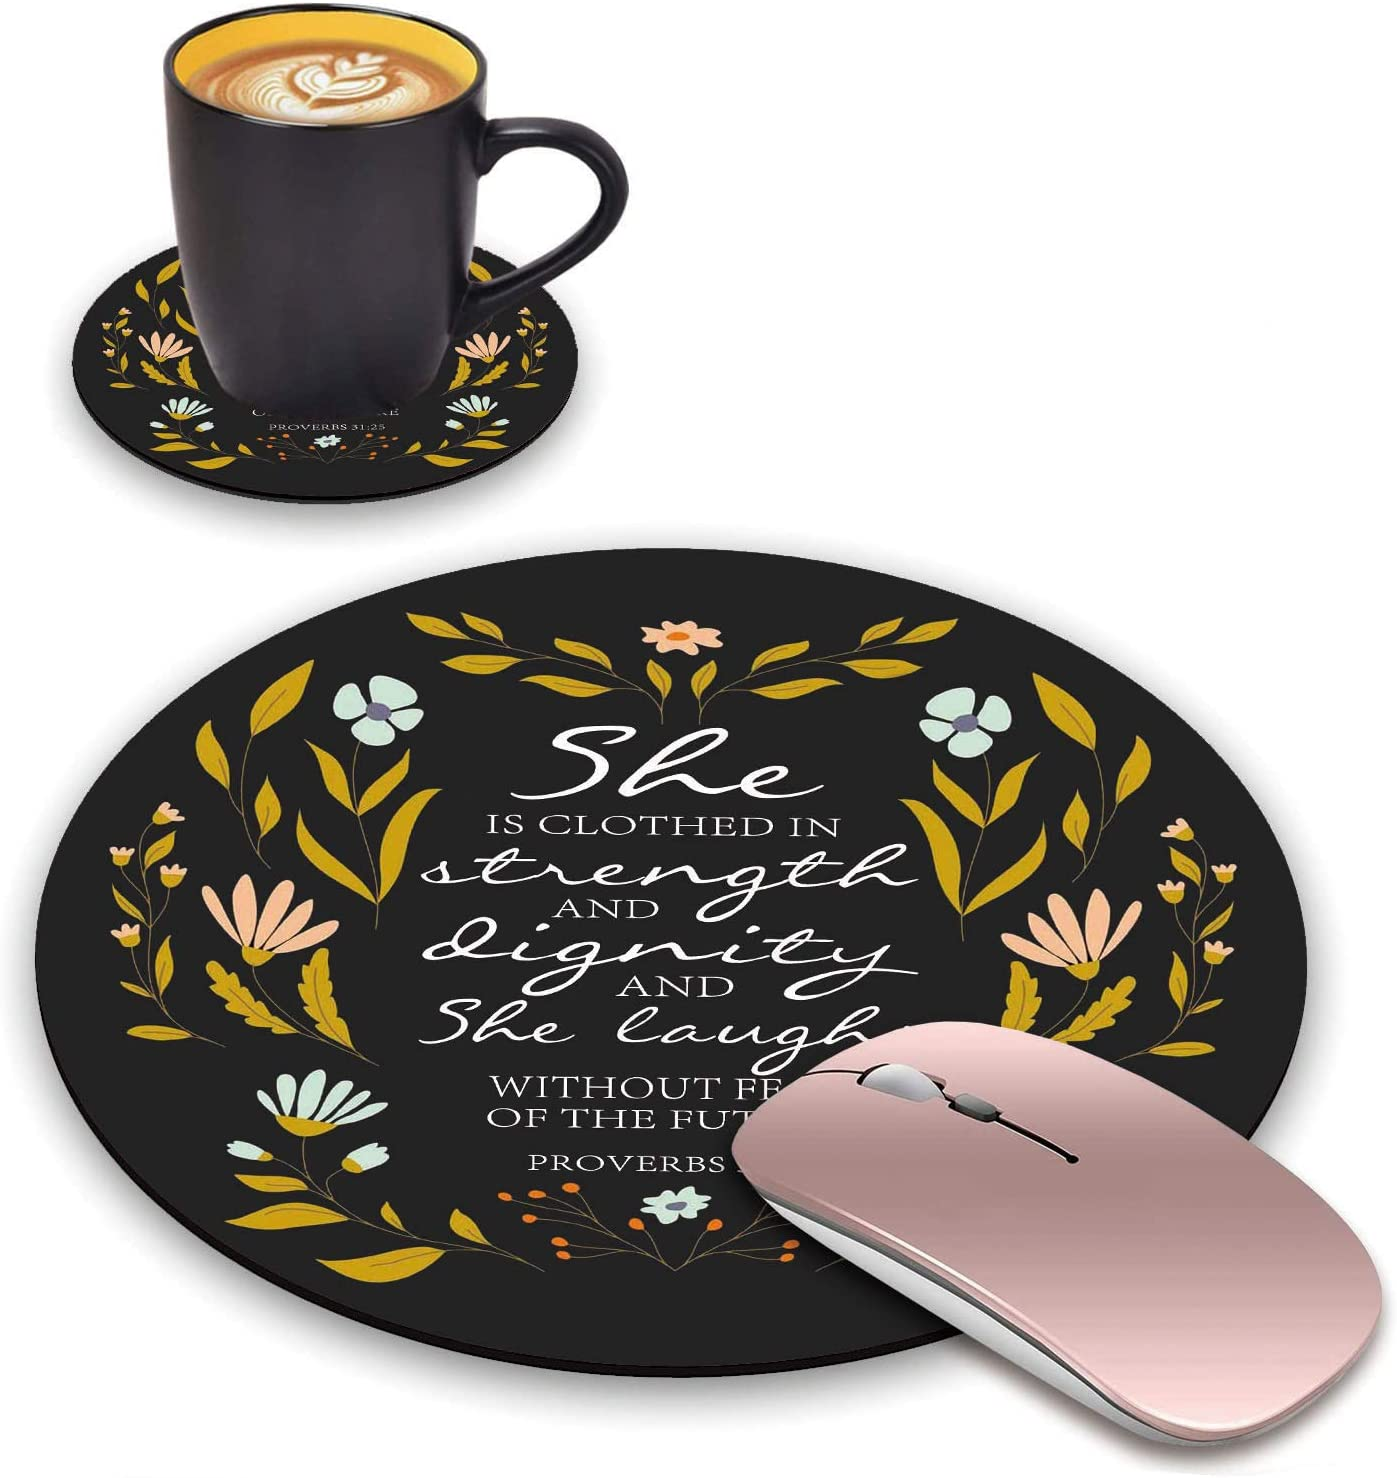 ChaTham Round Mouse Pad with Coasters Set, Floral Quote Christian Quote Bible Verse Proverbs 31:25 Mouse Pad, Non-Slip Rubber Base Mouse Pads for Laptop and Computer Office Accessories